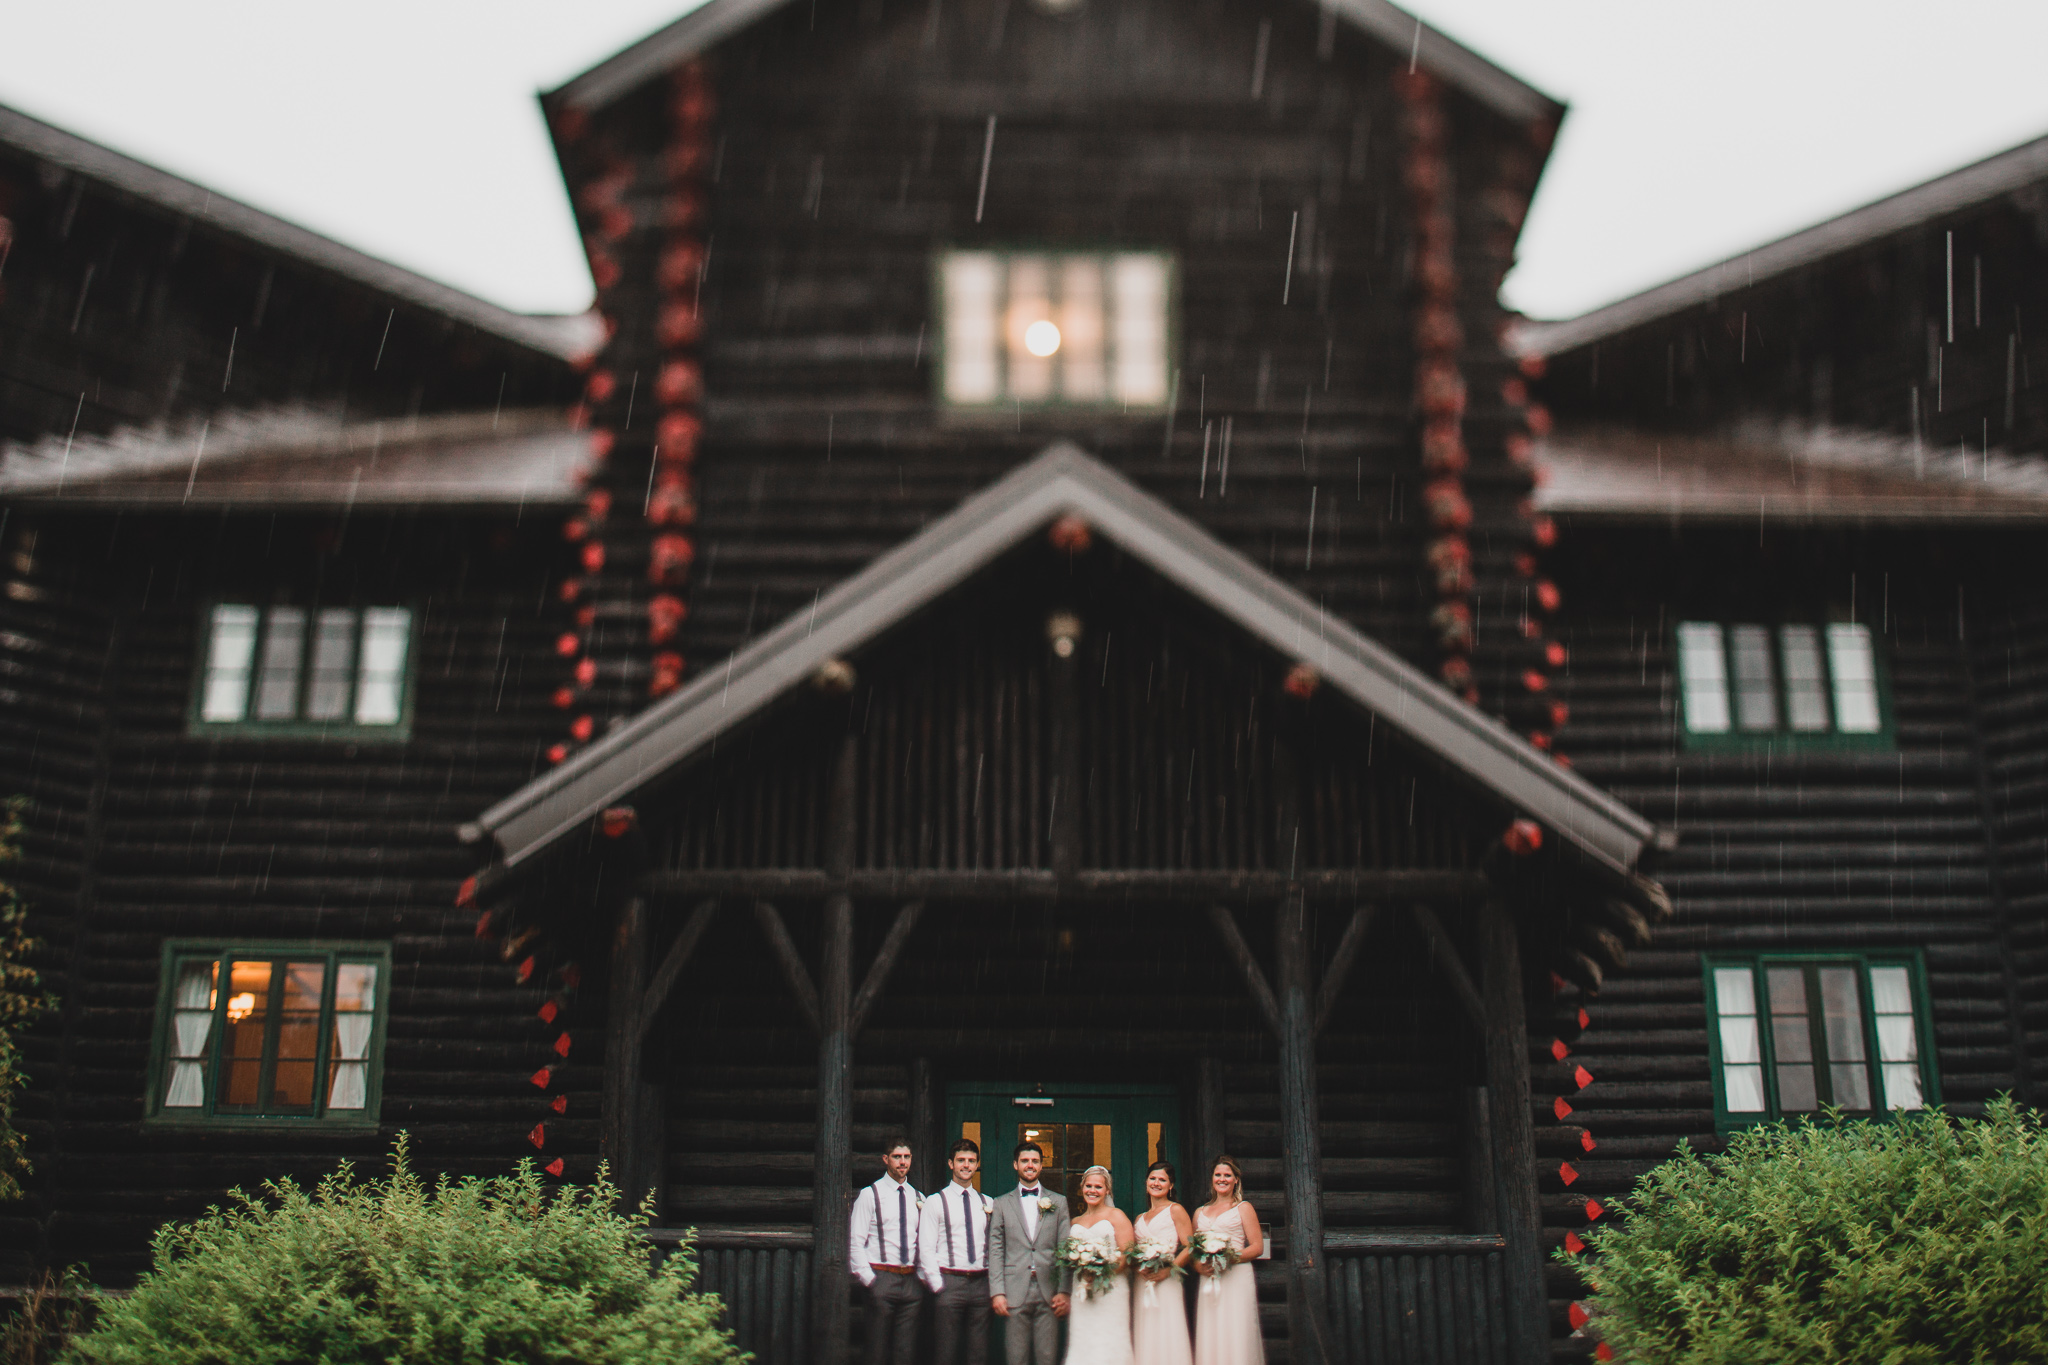 Chateau Montebello Wedding Photo Locations, Rain